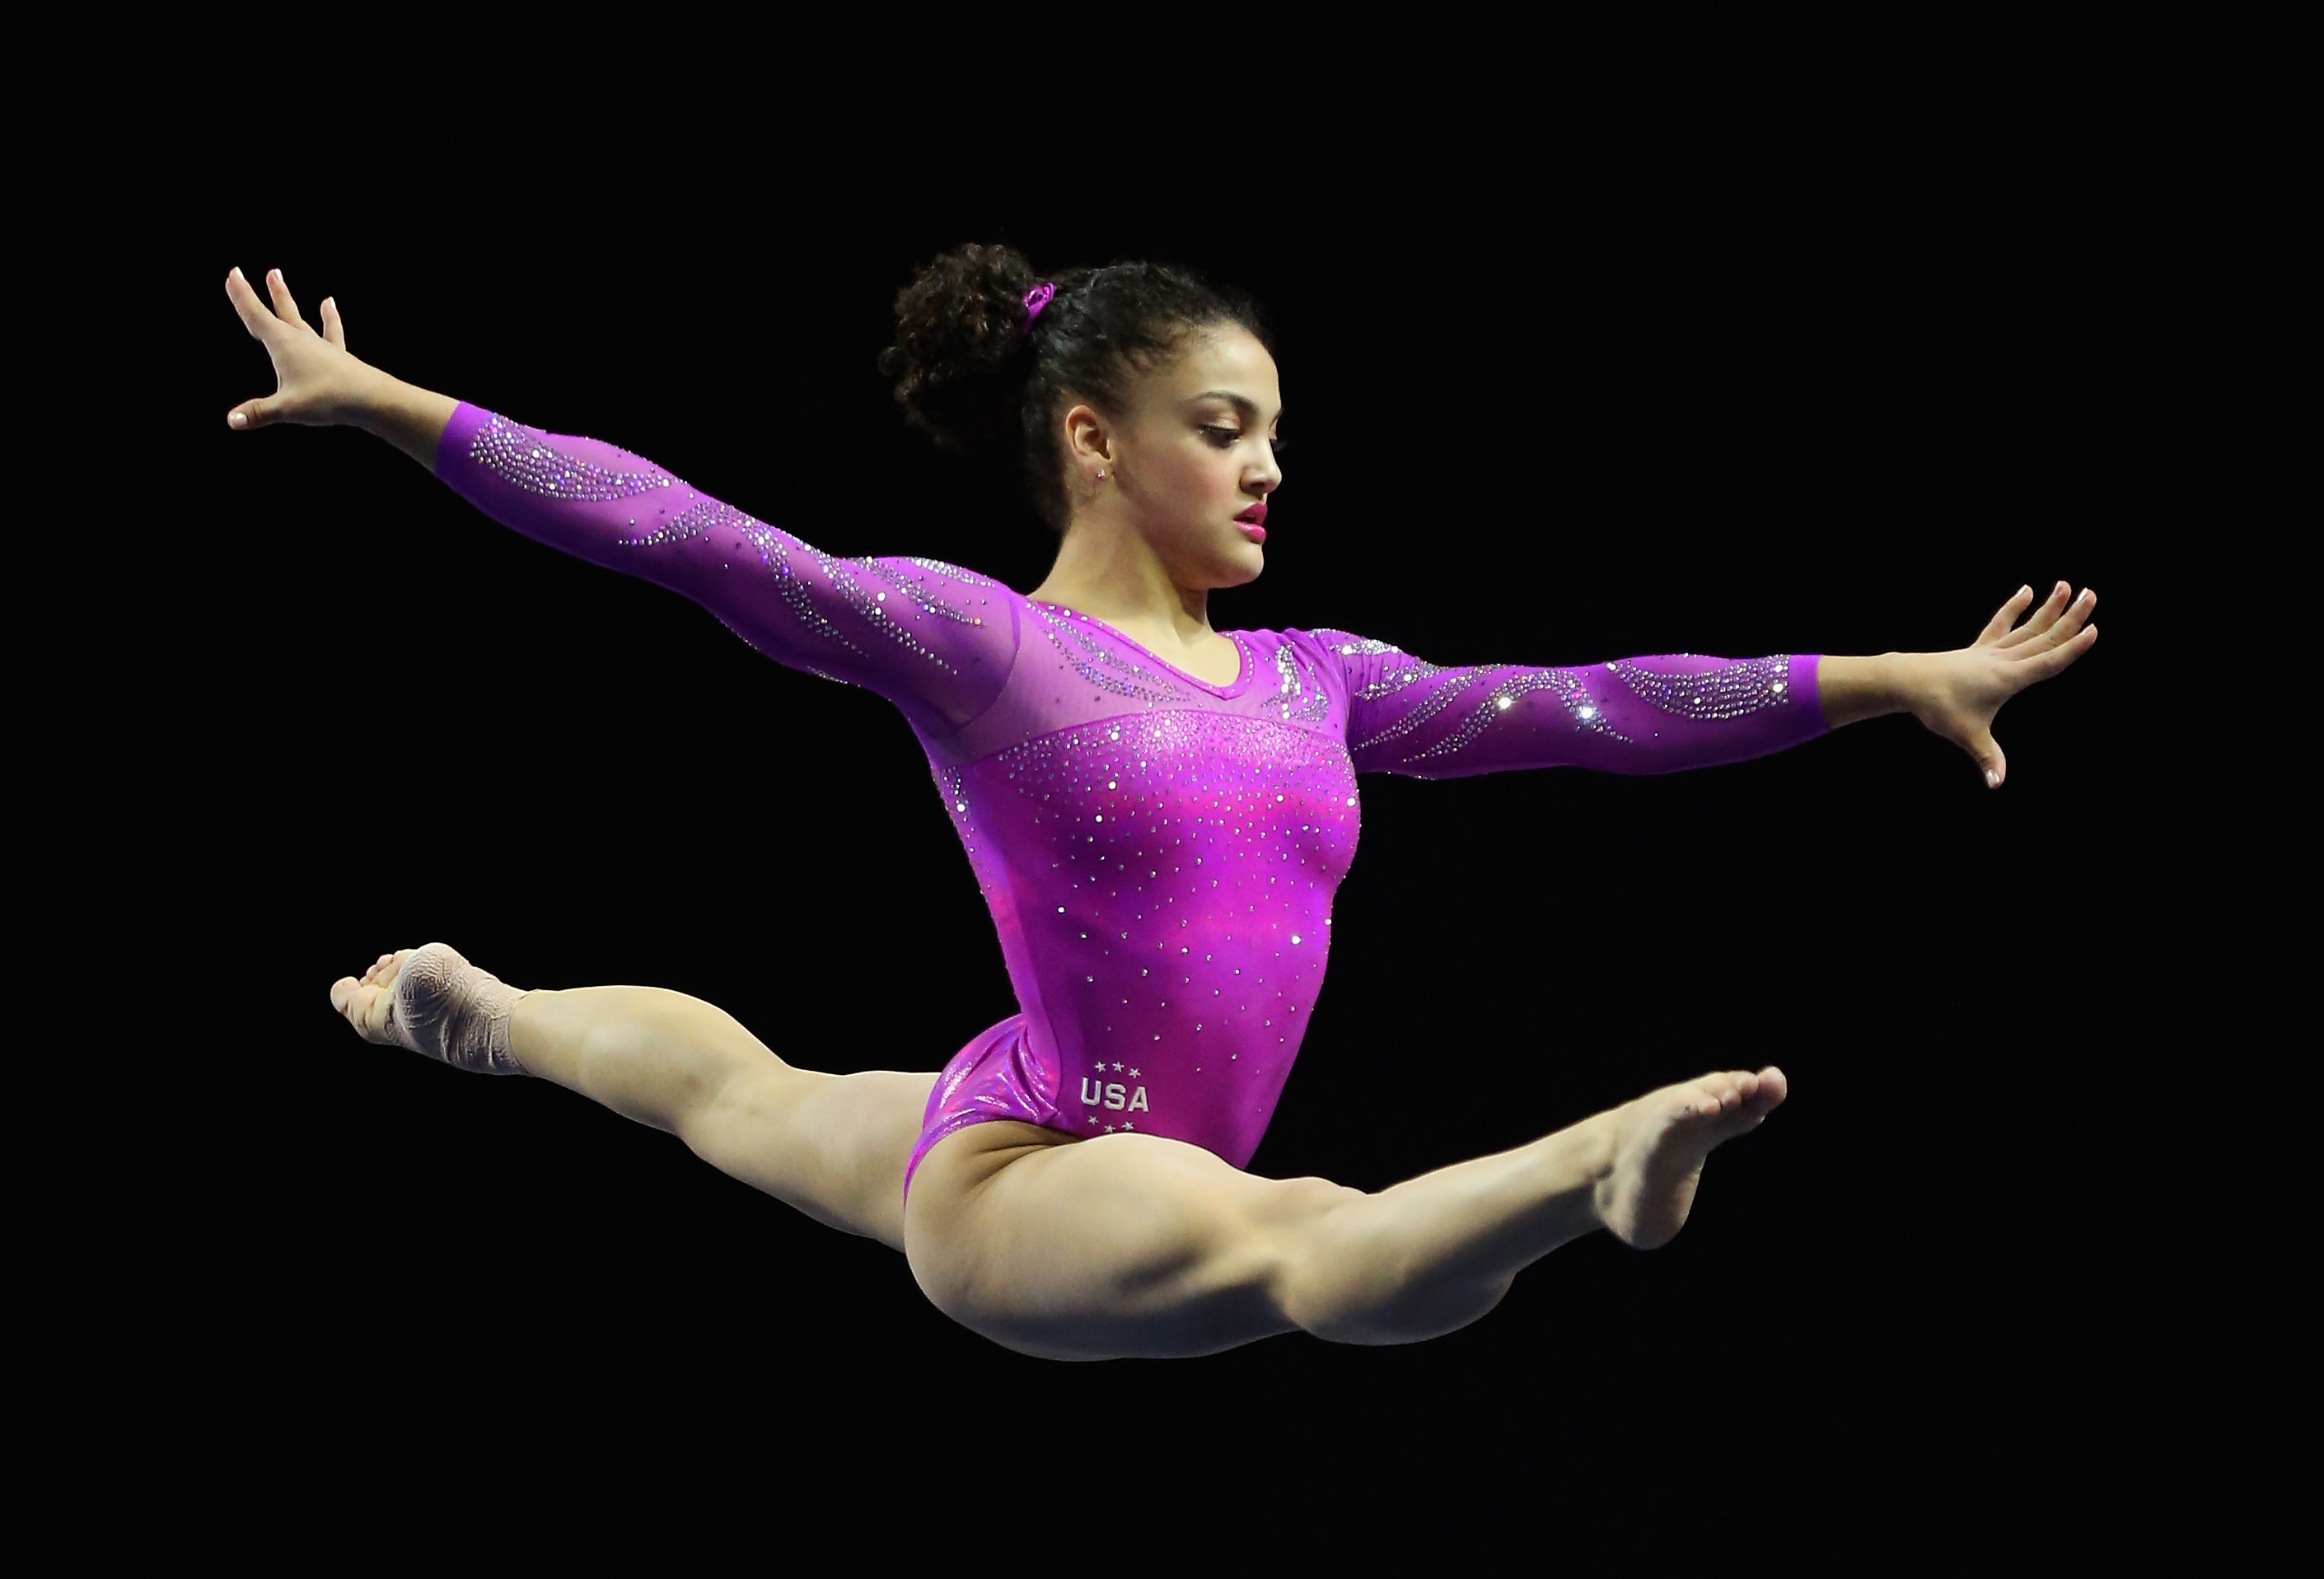 Laurie Hernández Is the Second Puerto Rican Gymnast to Represent Team USA at the Olympics